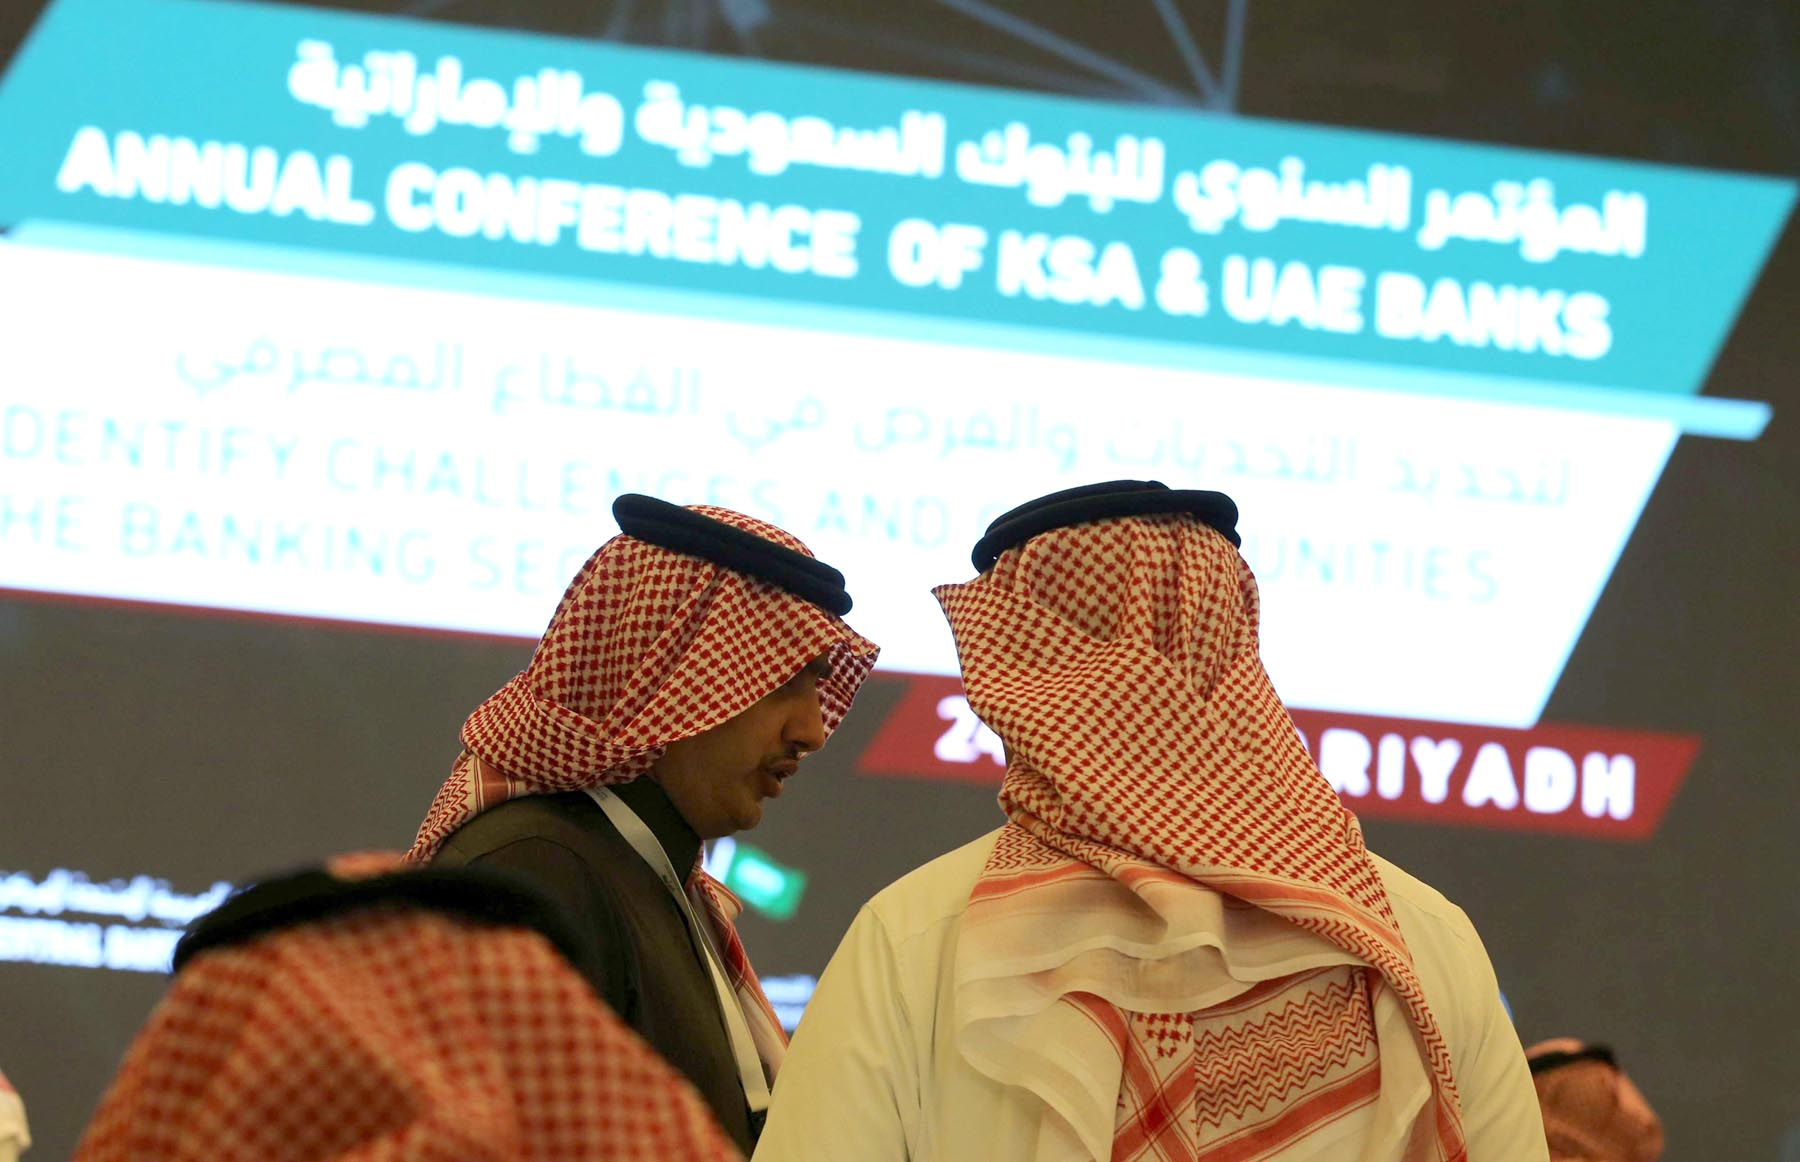 Participants attend the annual conference of Saudi and UAE banks in Riyadh, November 24. (Reuters)